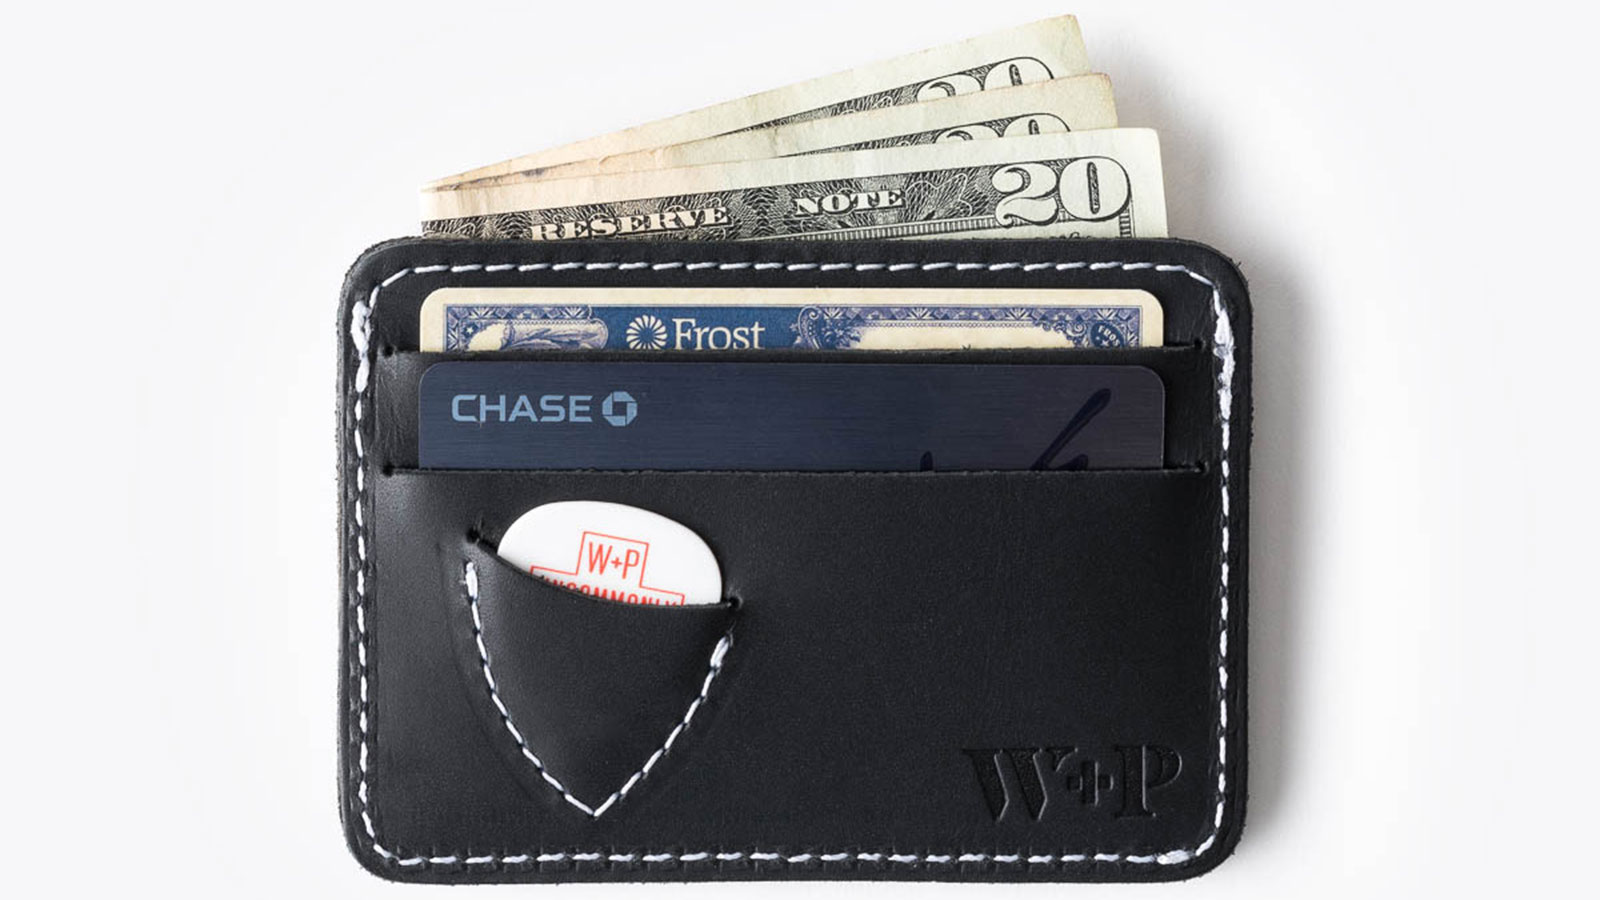 Picker's Mens Wallet By Whipping Post | cool mens wallets